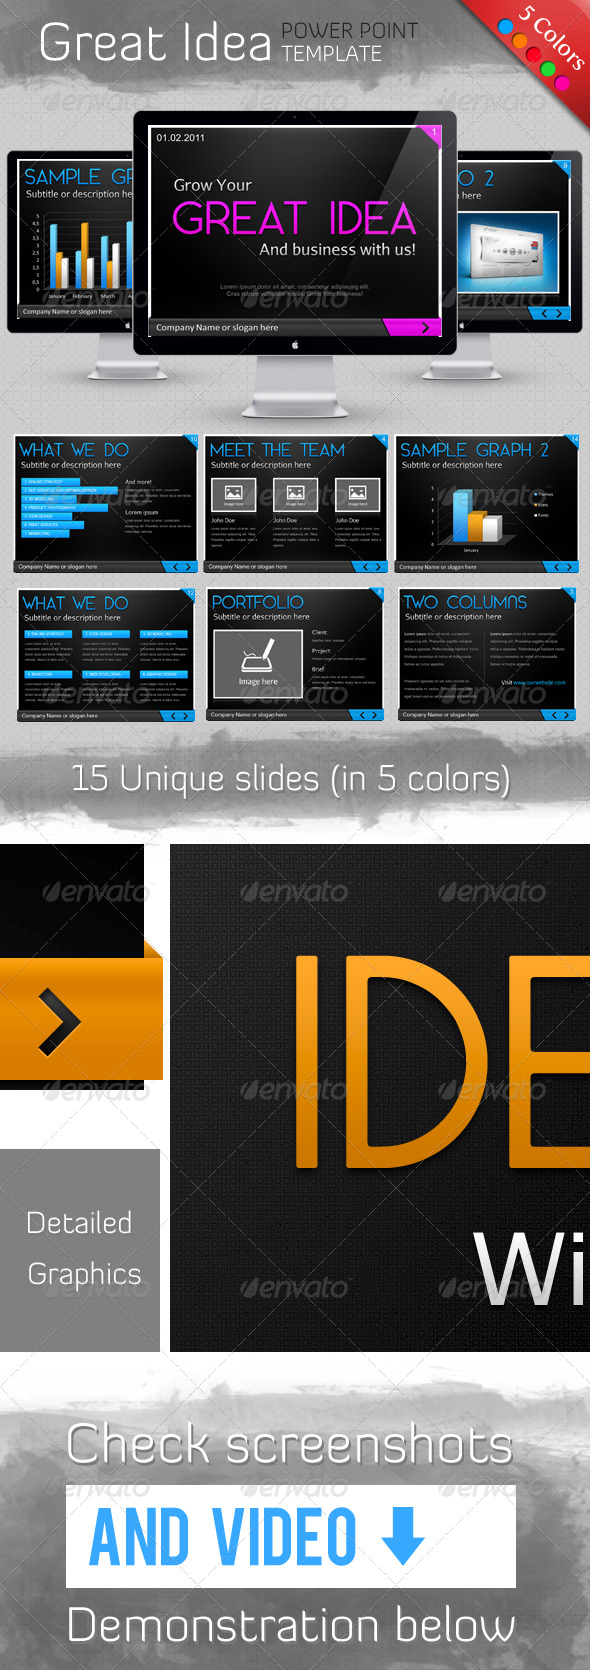 Great Idea Template - GraphicRiver Item for Sale